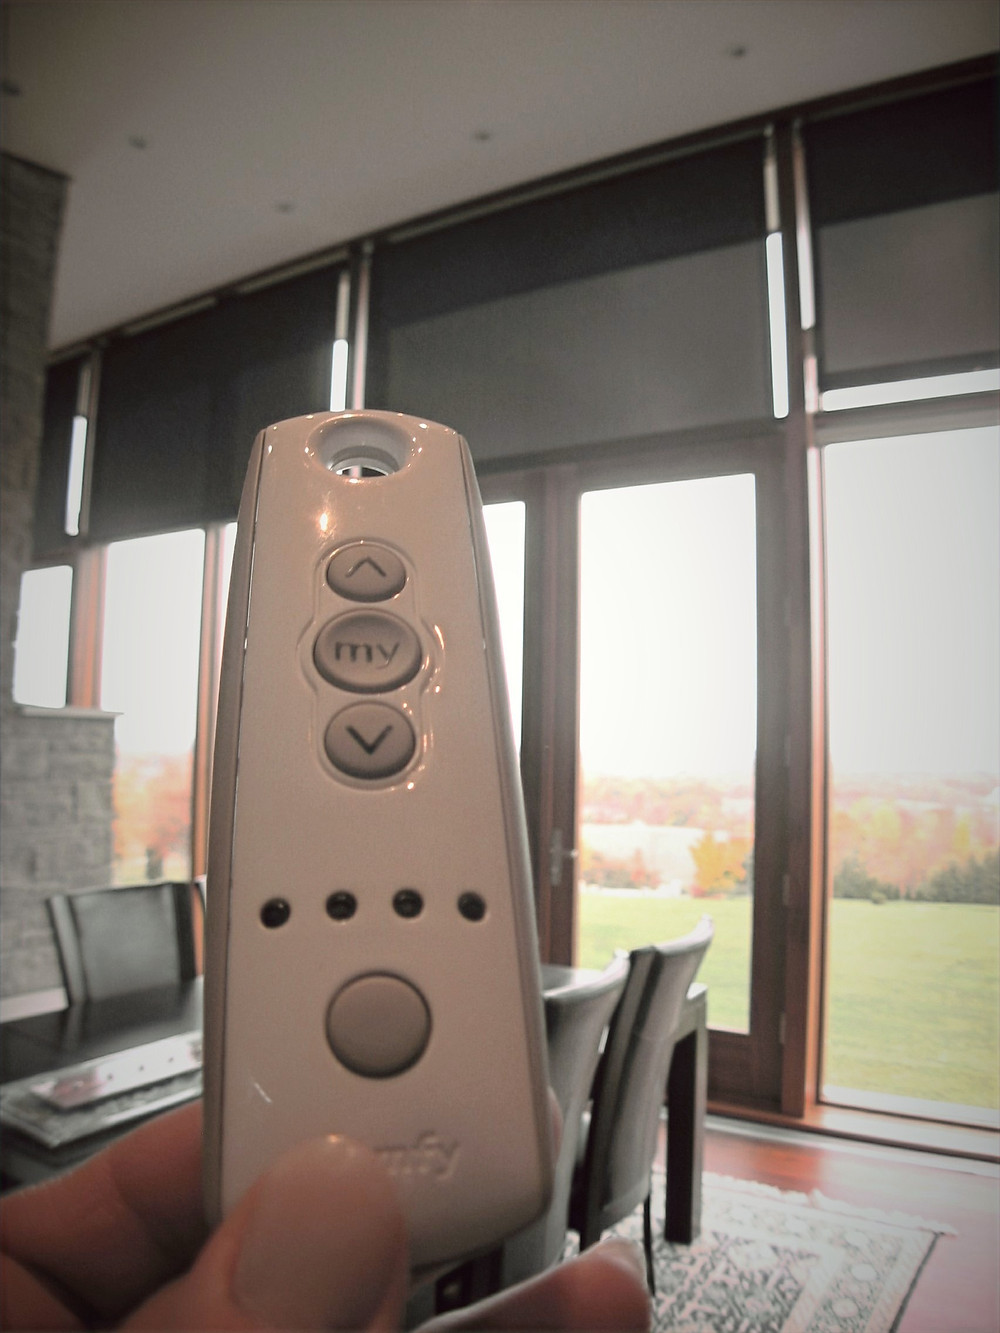 A hand held remote. Just one of the many options for operating motorized shades.